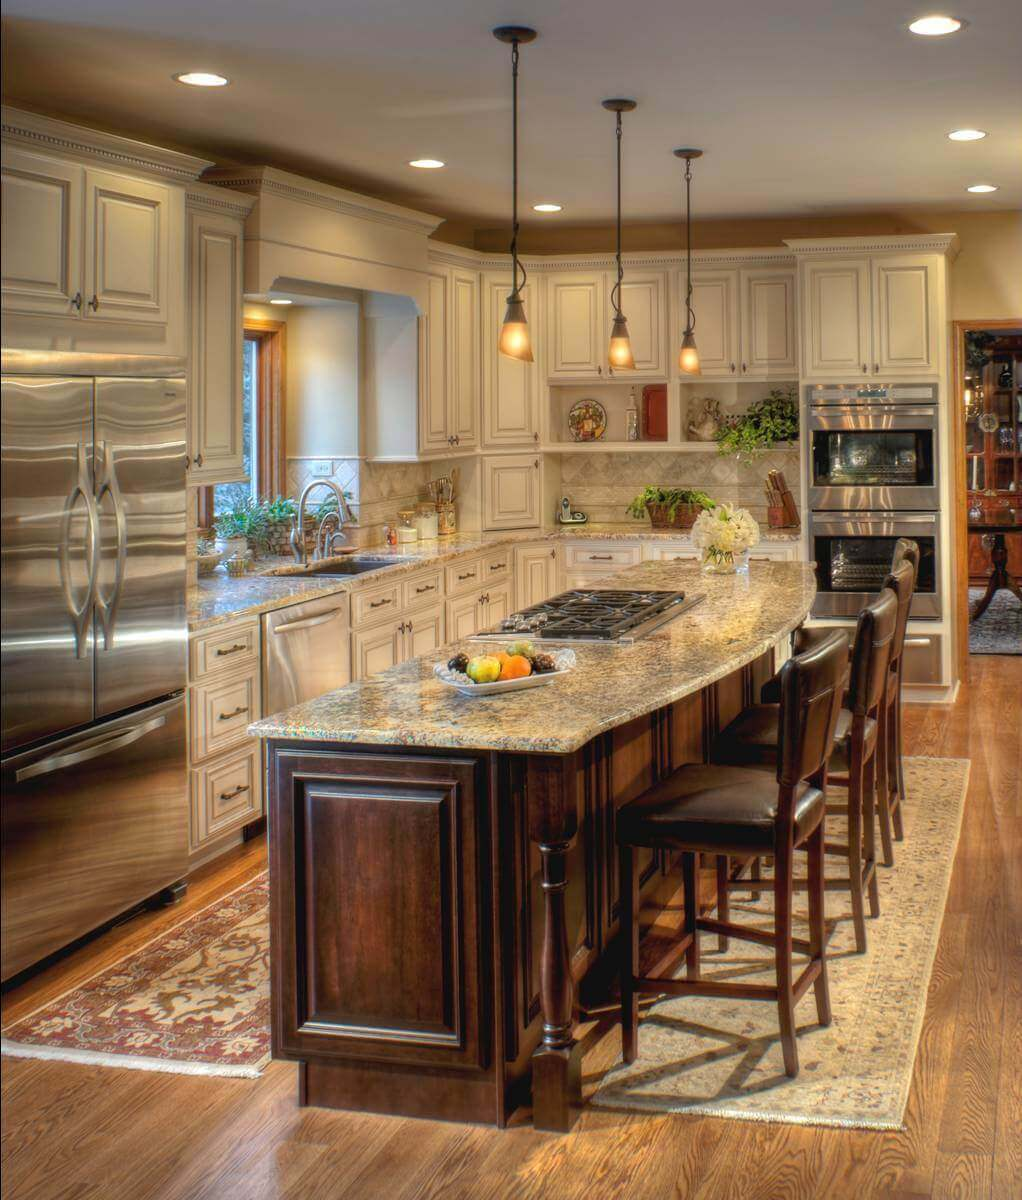 Kitchen Island Ideas And Designs ~ Deluxe custom kitchen island ideas jaw dropping designs